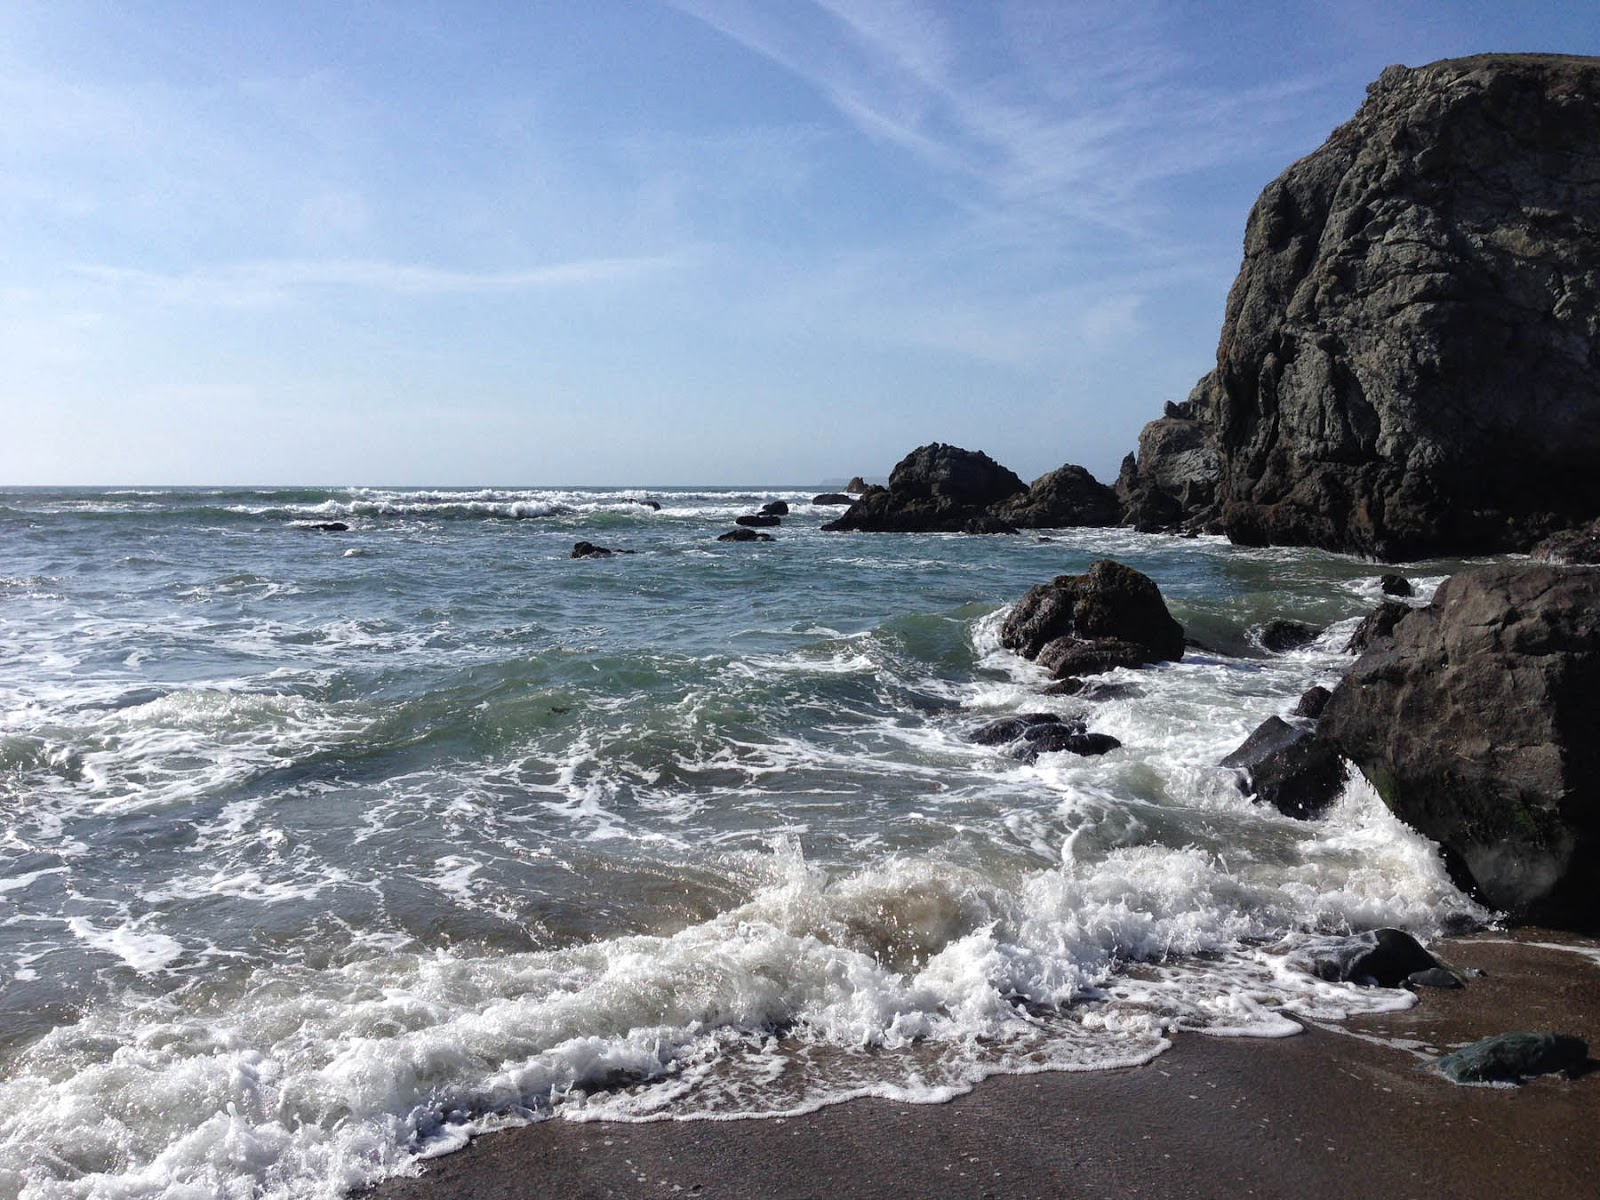 Soul restoration: A weekend at Dillon Beach